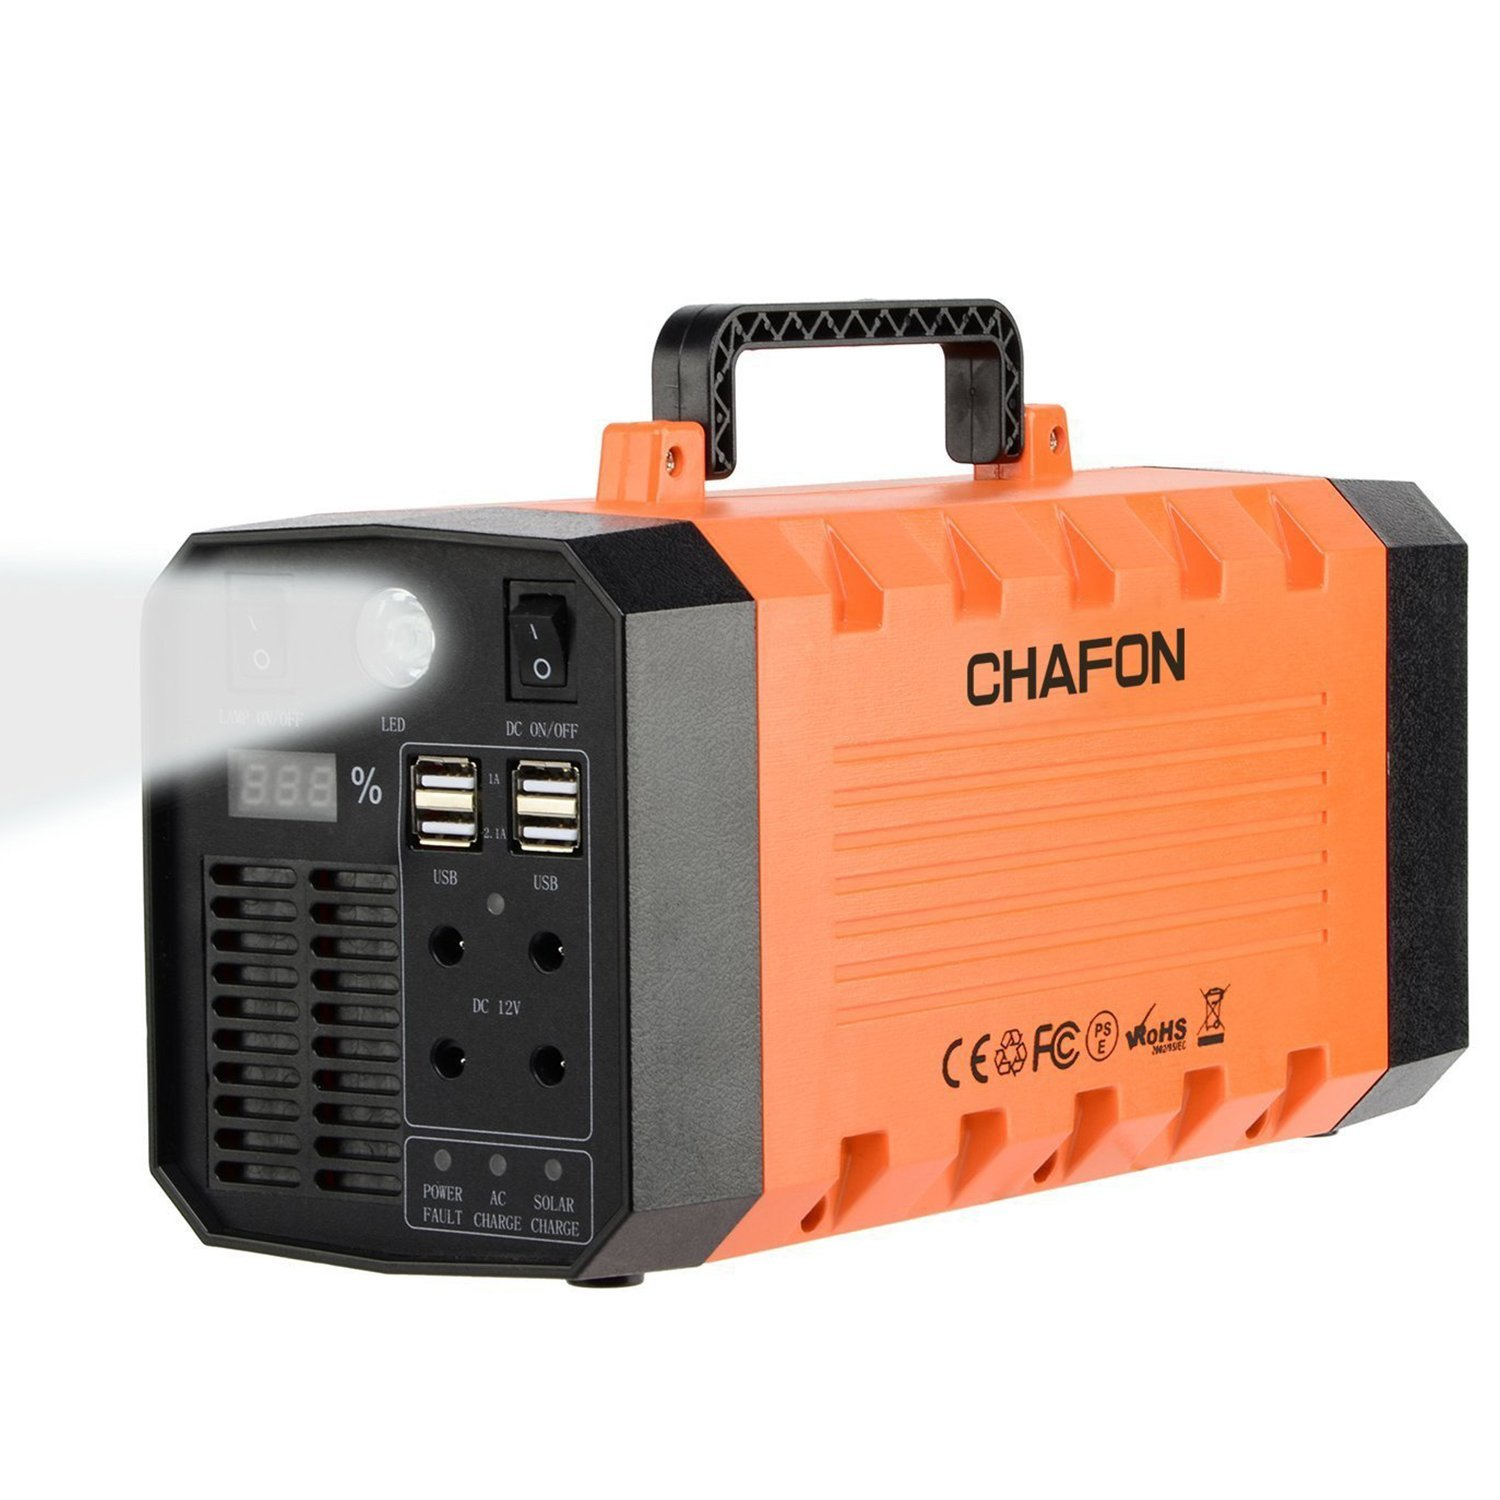 288wh Portable Generator Ups Battery Backuprechargeable 500 W Inverter Circuit Diagram Power Source With 110v 500w Ac12v Carusb Portscar Jump Starter For Camping